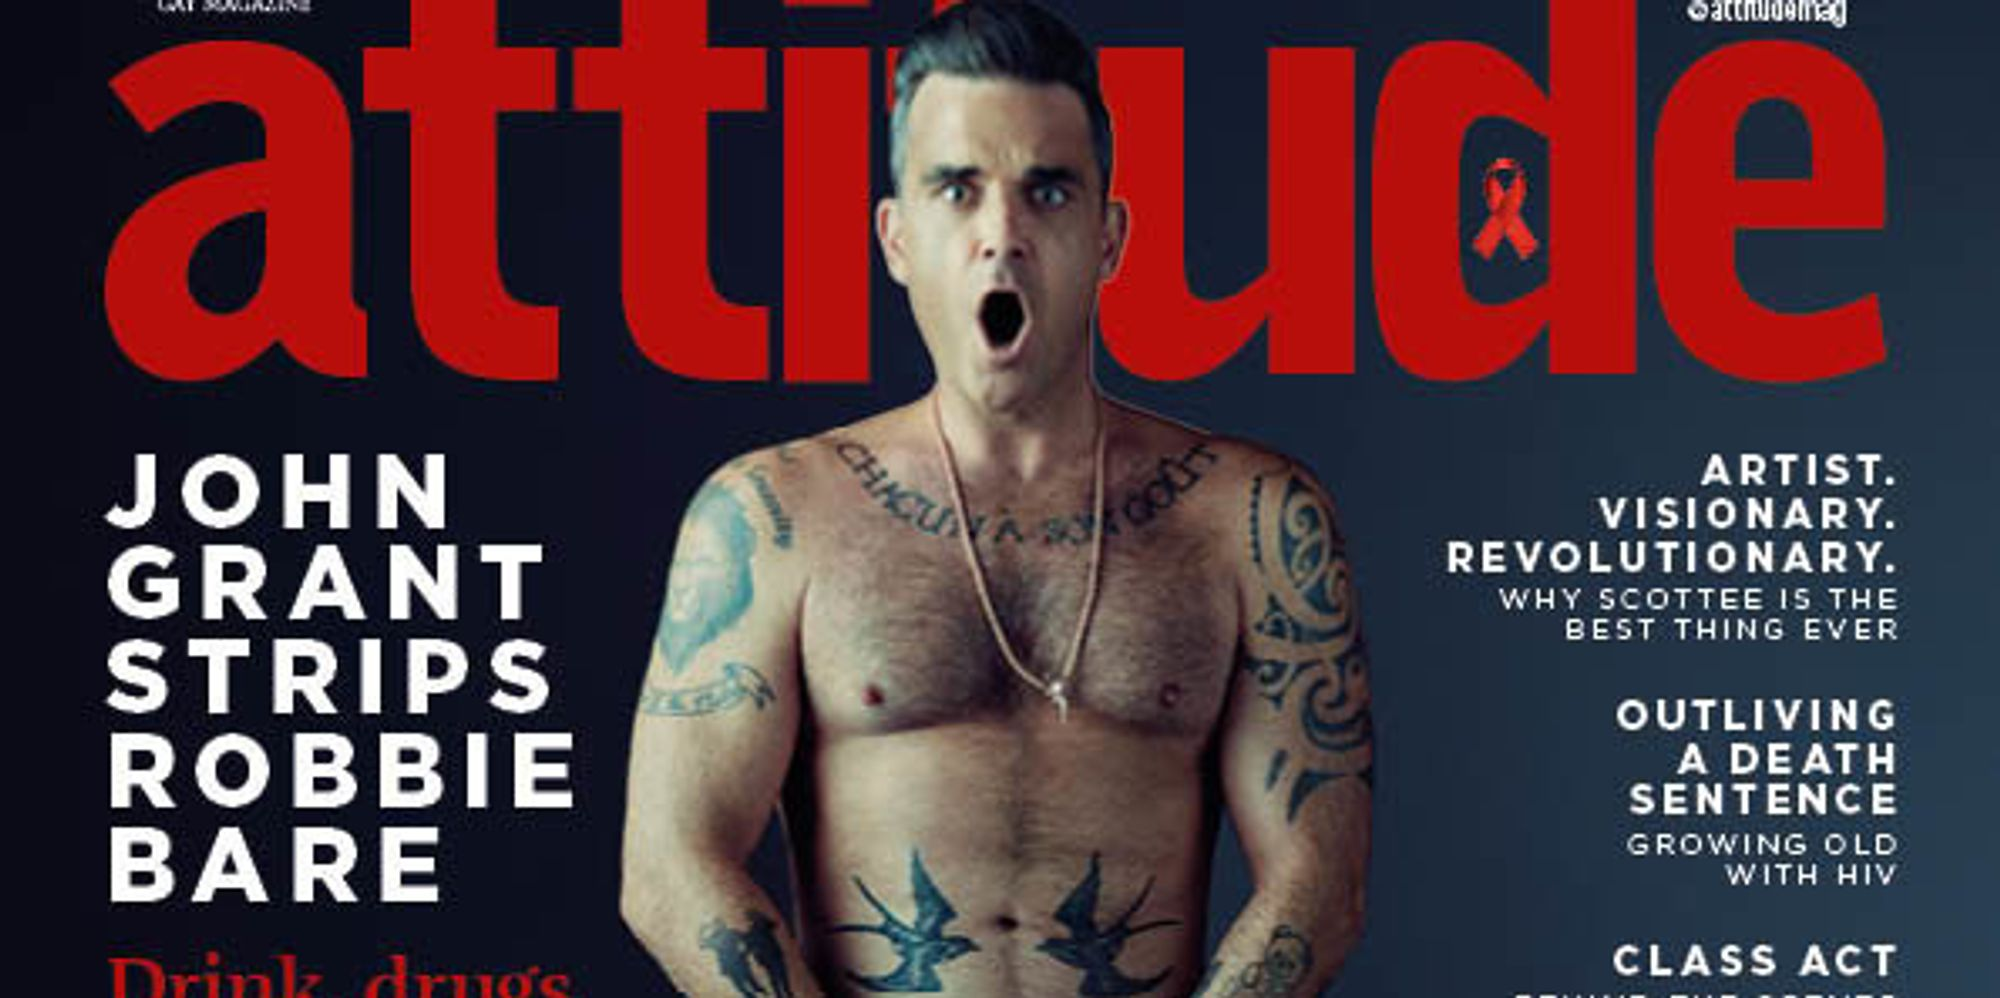 Robbie william nude images 24